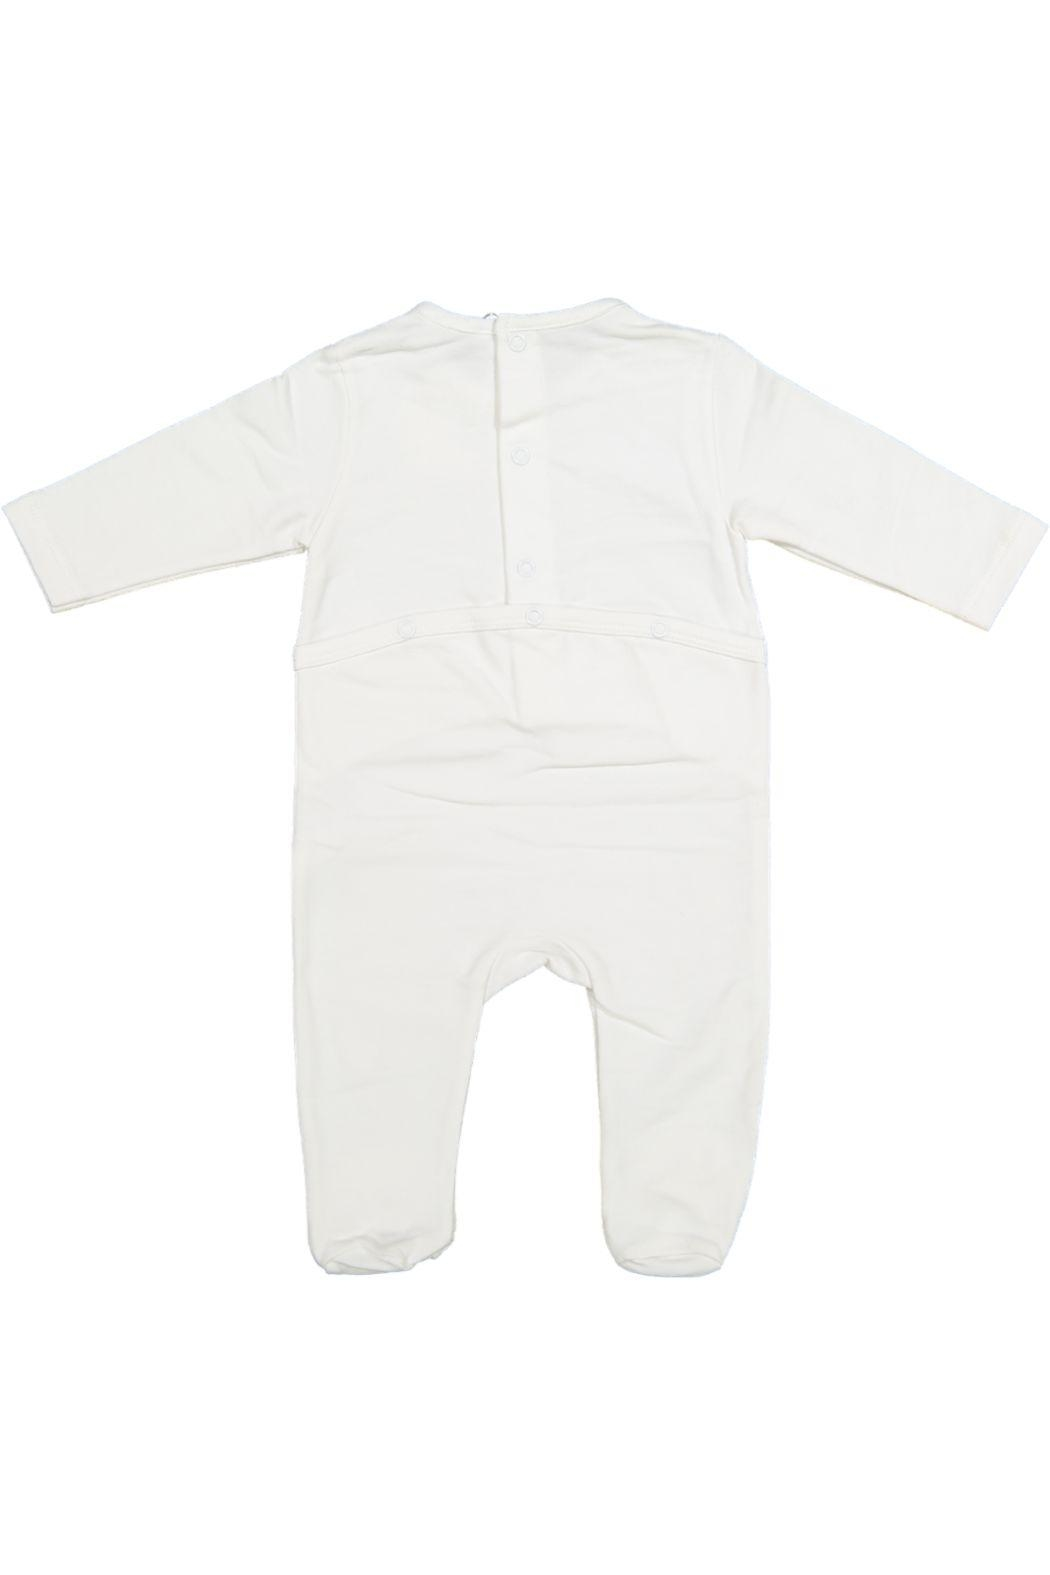 Juste Clé White Onesie With Grey Luggage - Front Full Image